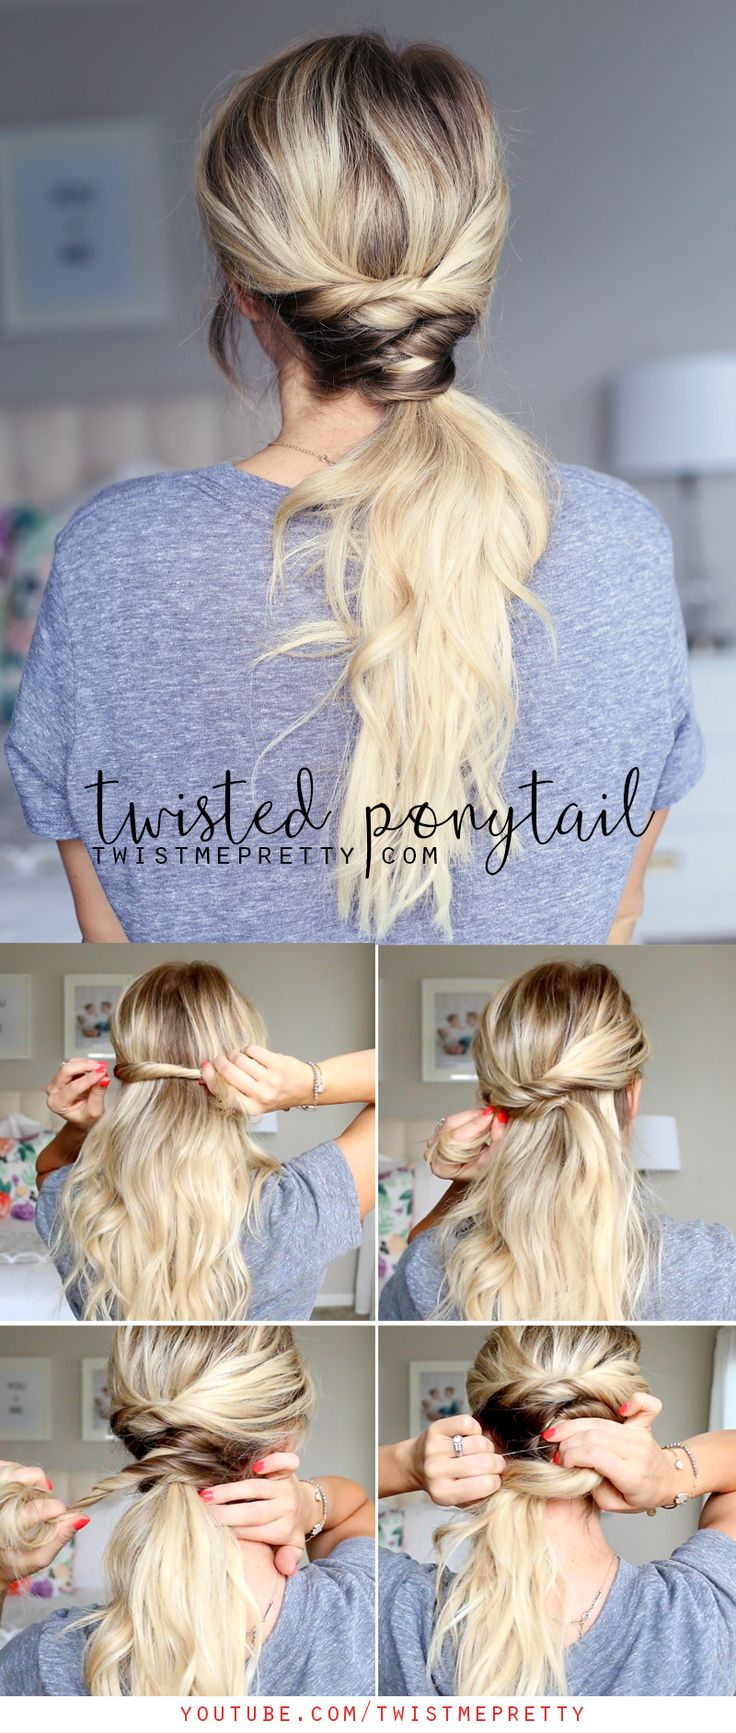 Twisted Ponytail - Twist Me Pretty